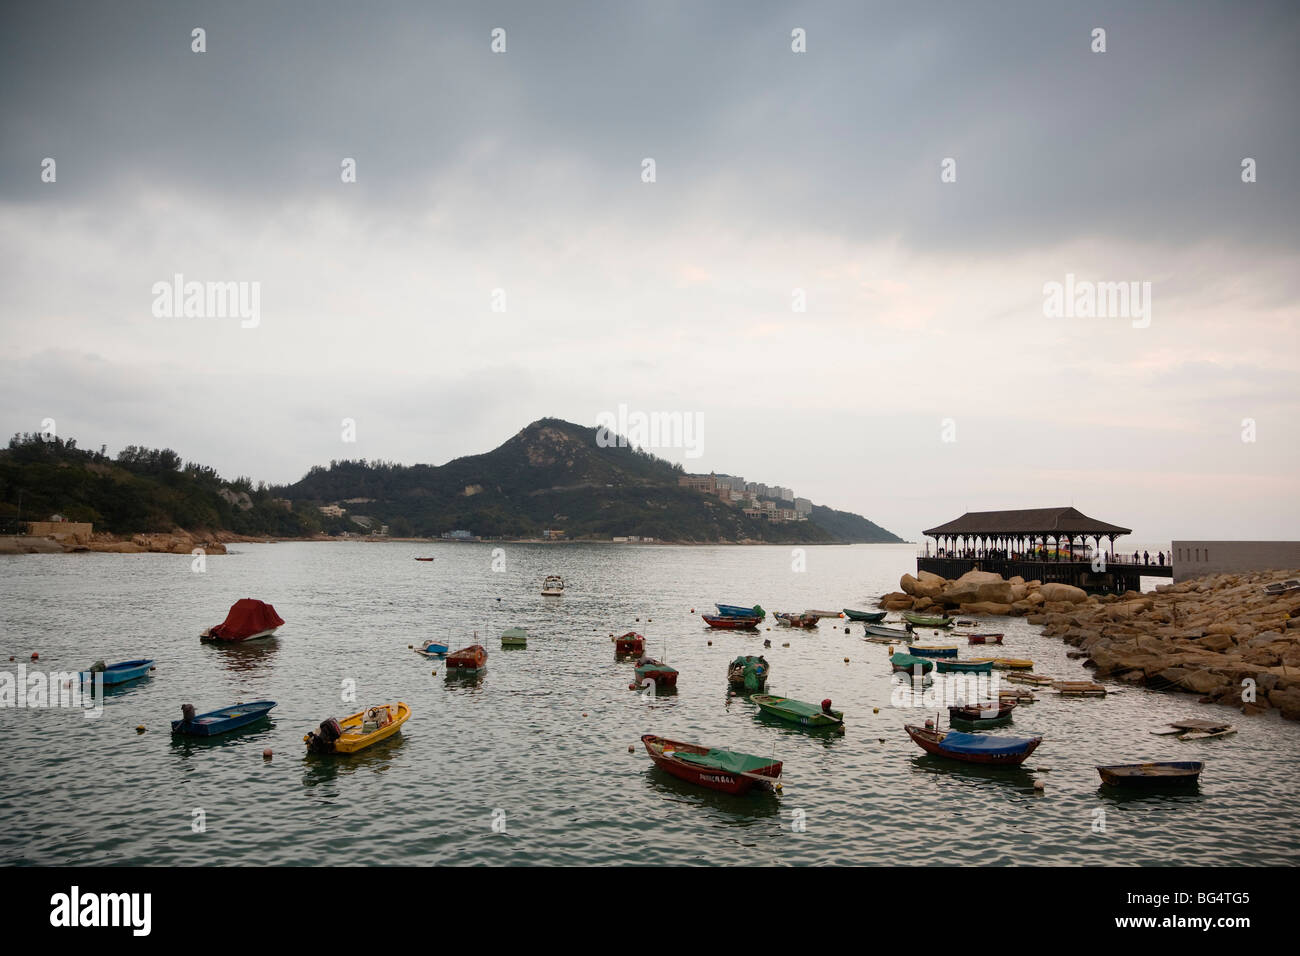 Boats docked at Stanley, Hong Kong, China Stock Photo